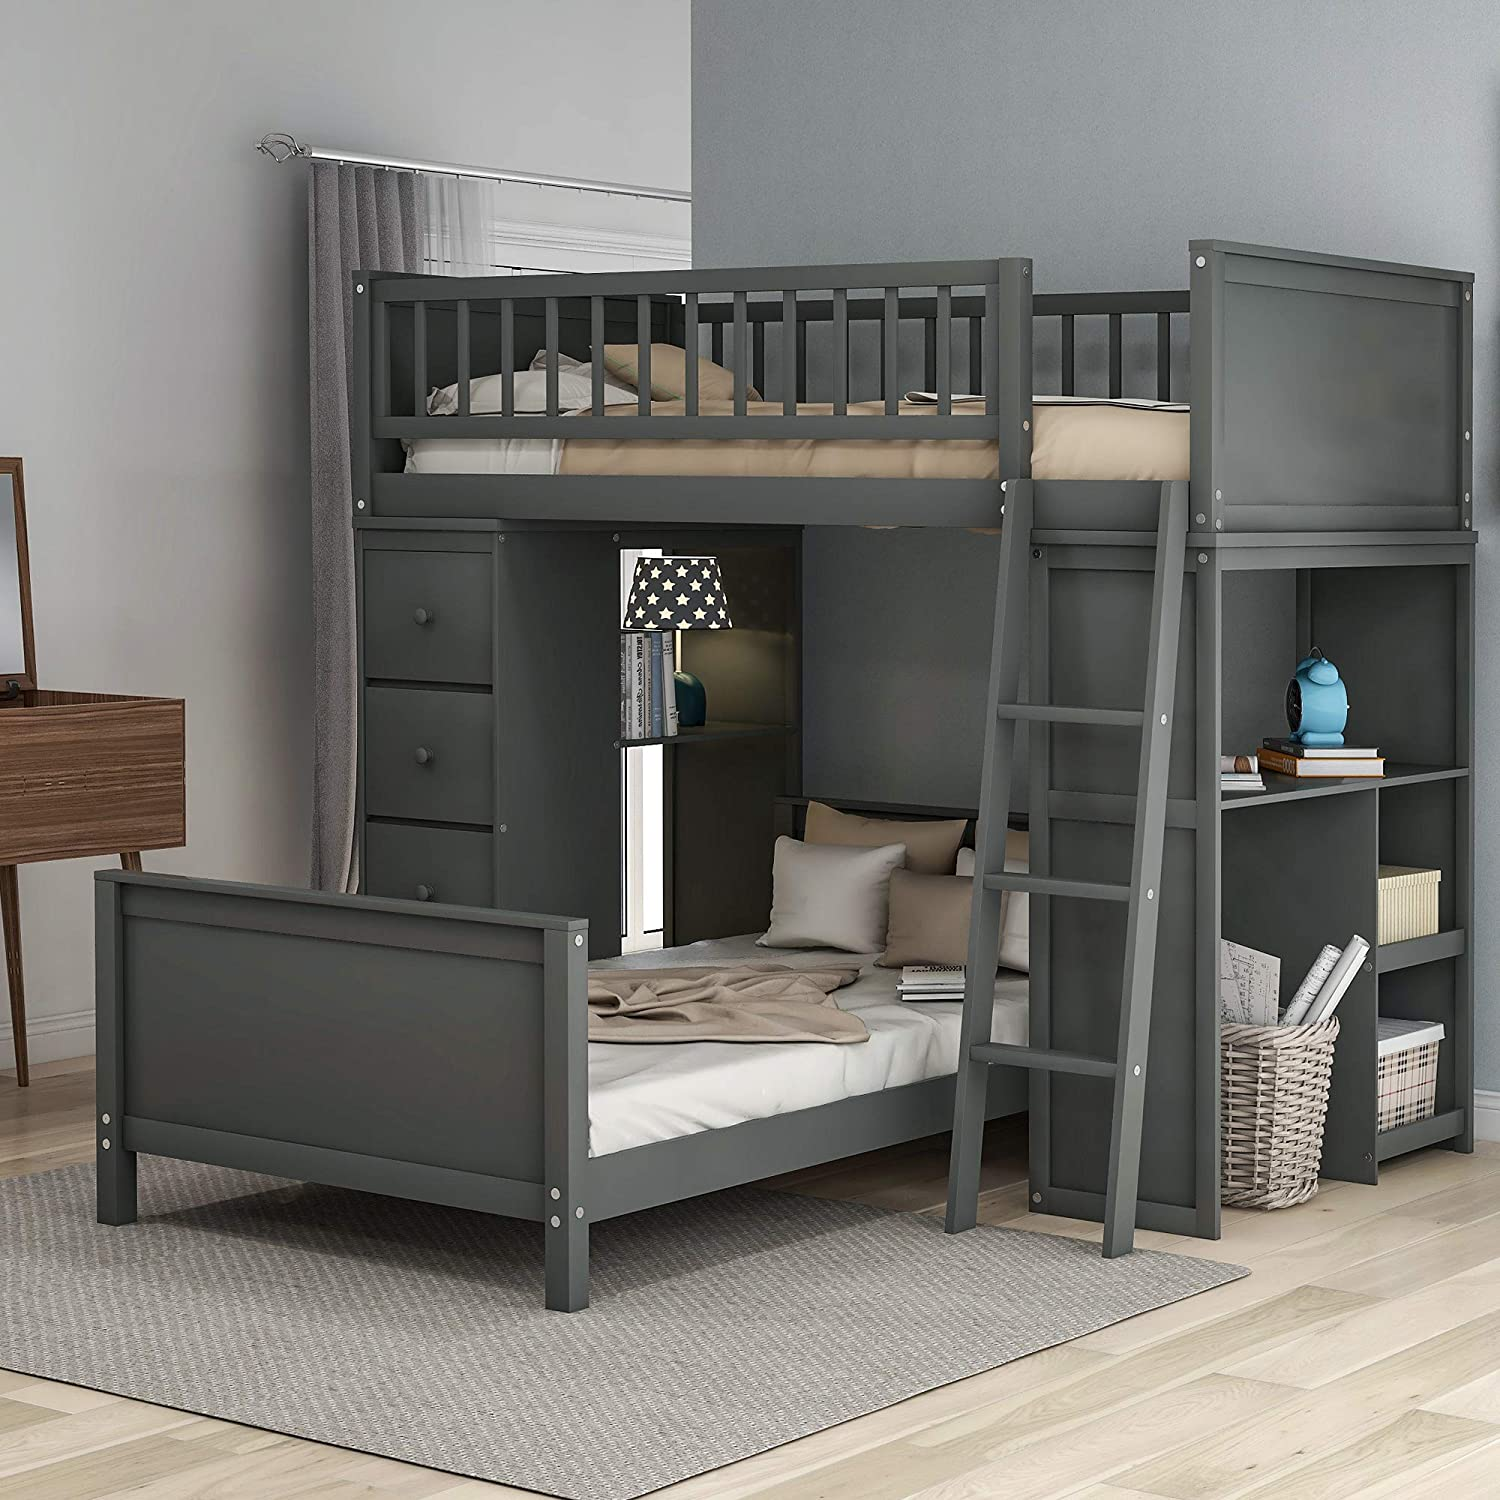 Amazon Com Merax Twin Over Twin Loft Bed Bunk Bed With Drawers And Shelves Twin Bed Set With Desks Gray Kitchen Dining